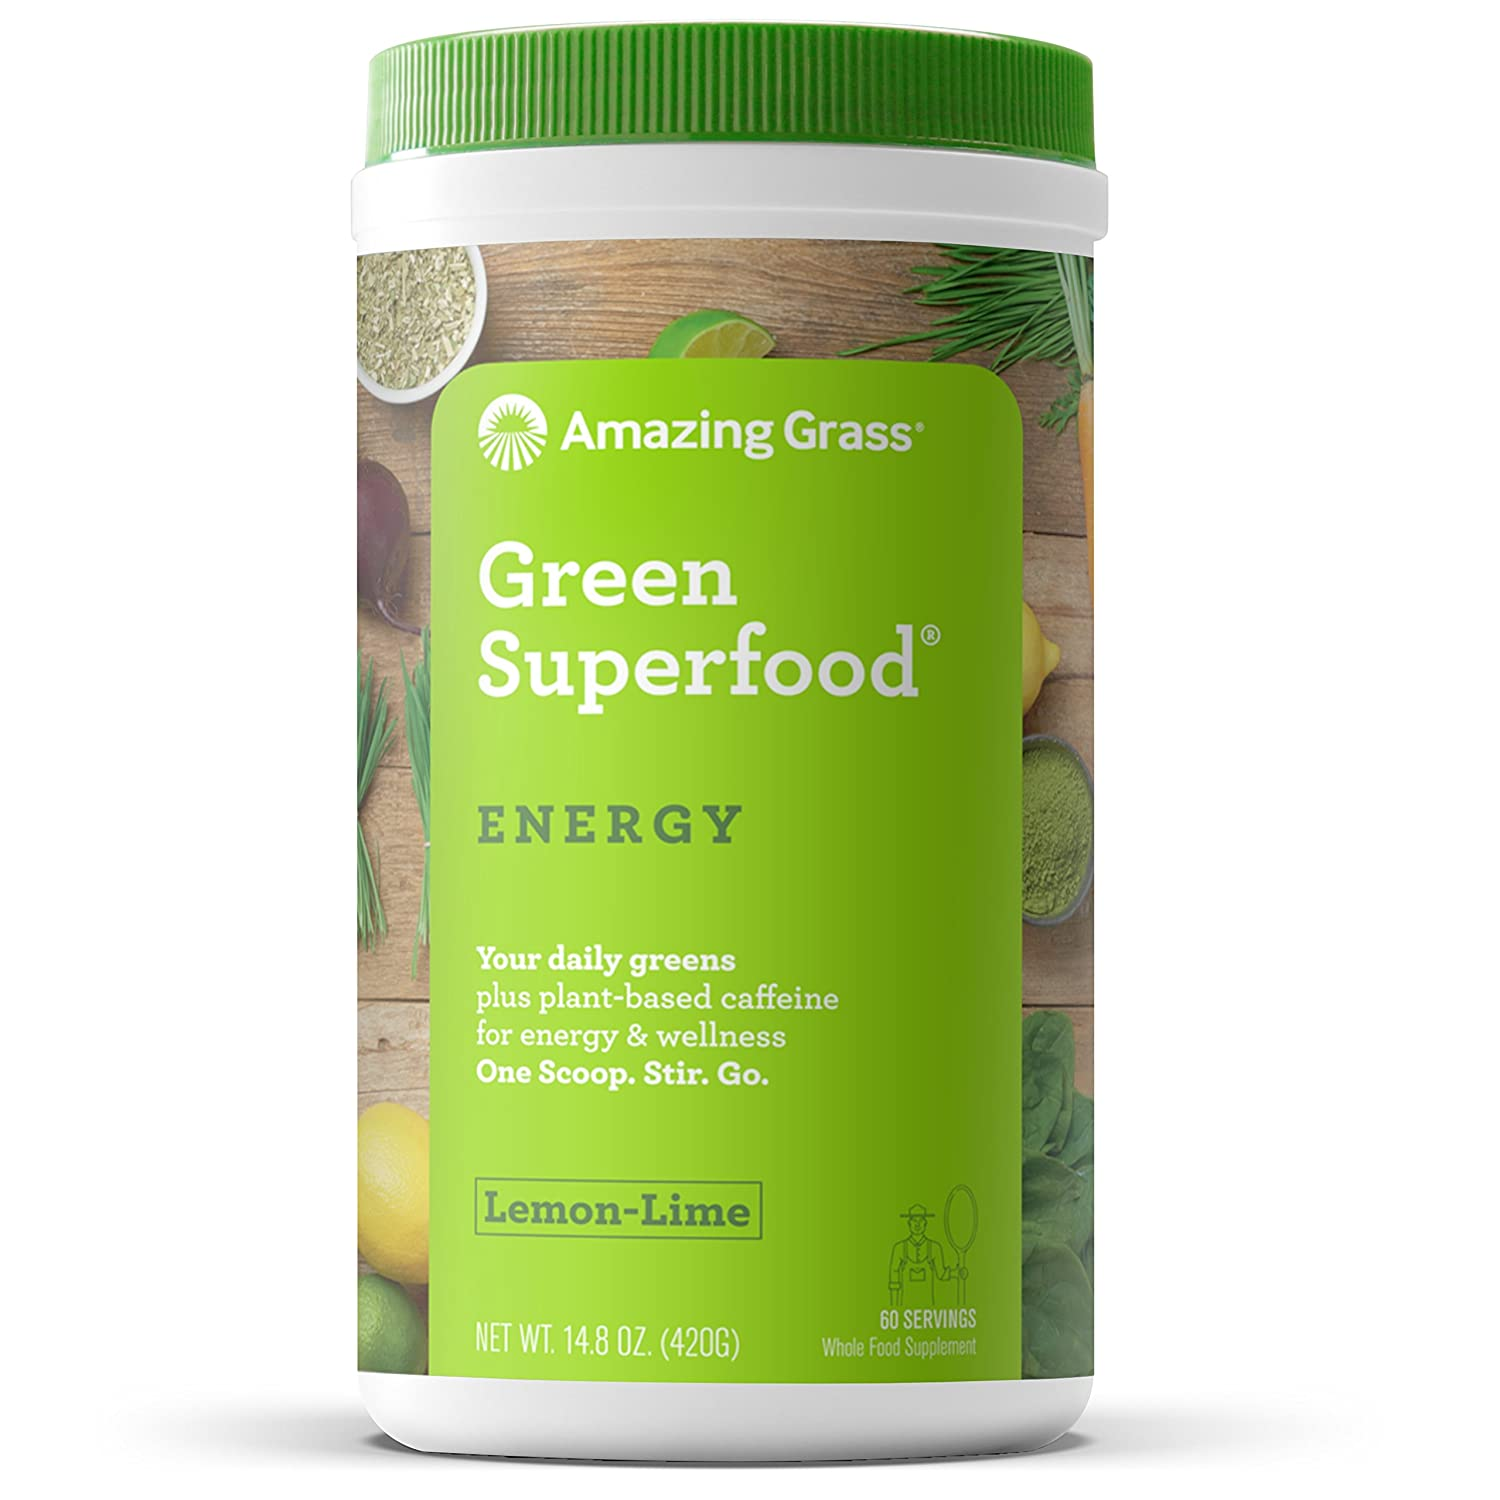 Amazing Grass Green Superfood Energy: Organic Yerba Mate and Matcha Green Tea Powder, Caffeine for energy plus One serving of Greens and Veggies, Lemon Lime Flavor, 60 Servings